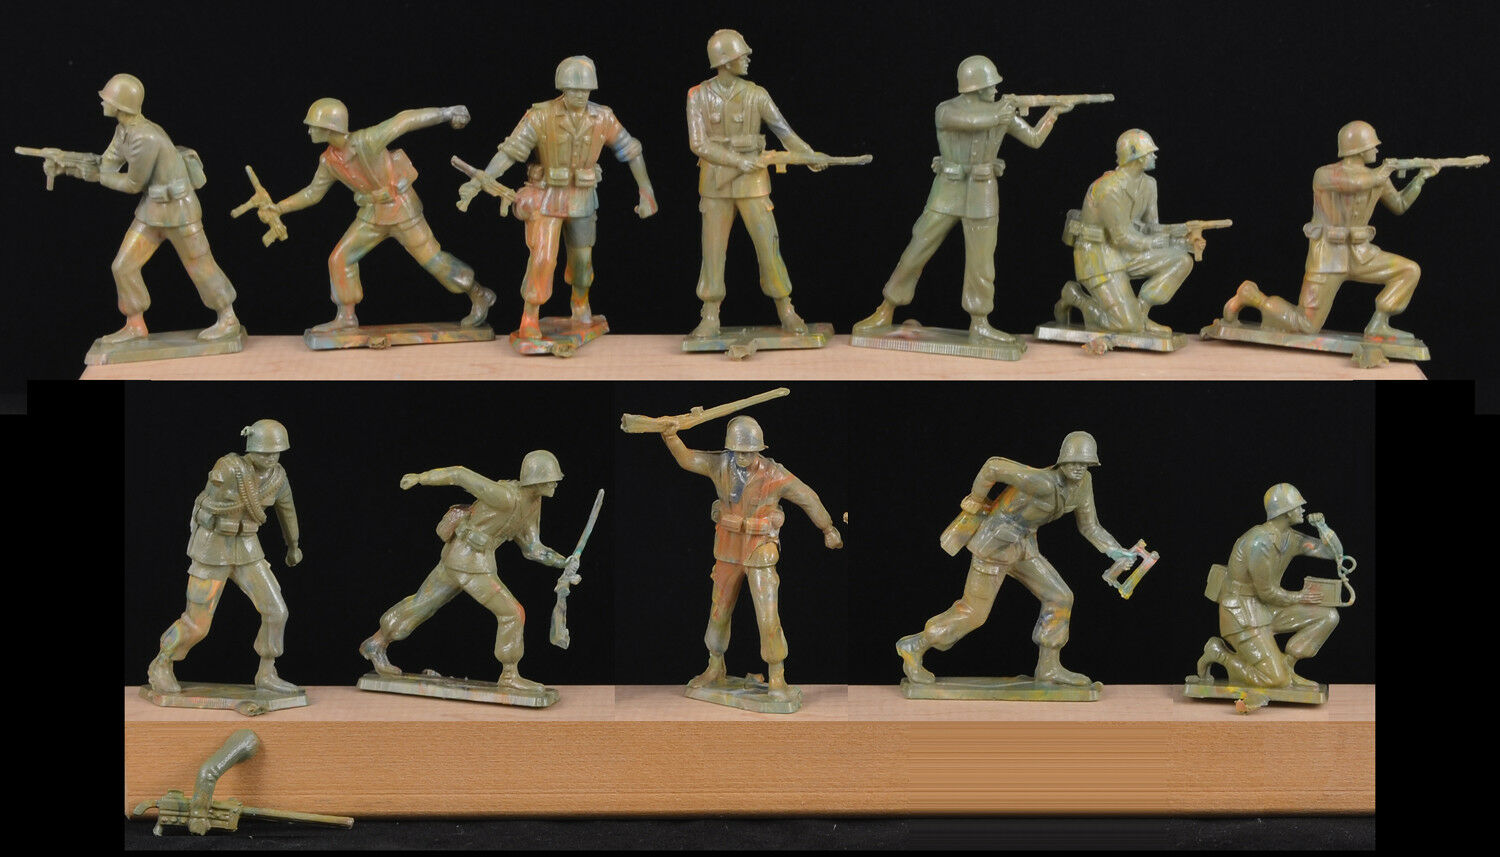 Starlux Commandos - Complete set of 12 - 60mm Unpainted Toy Soldiers